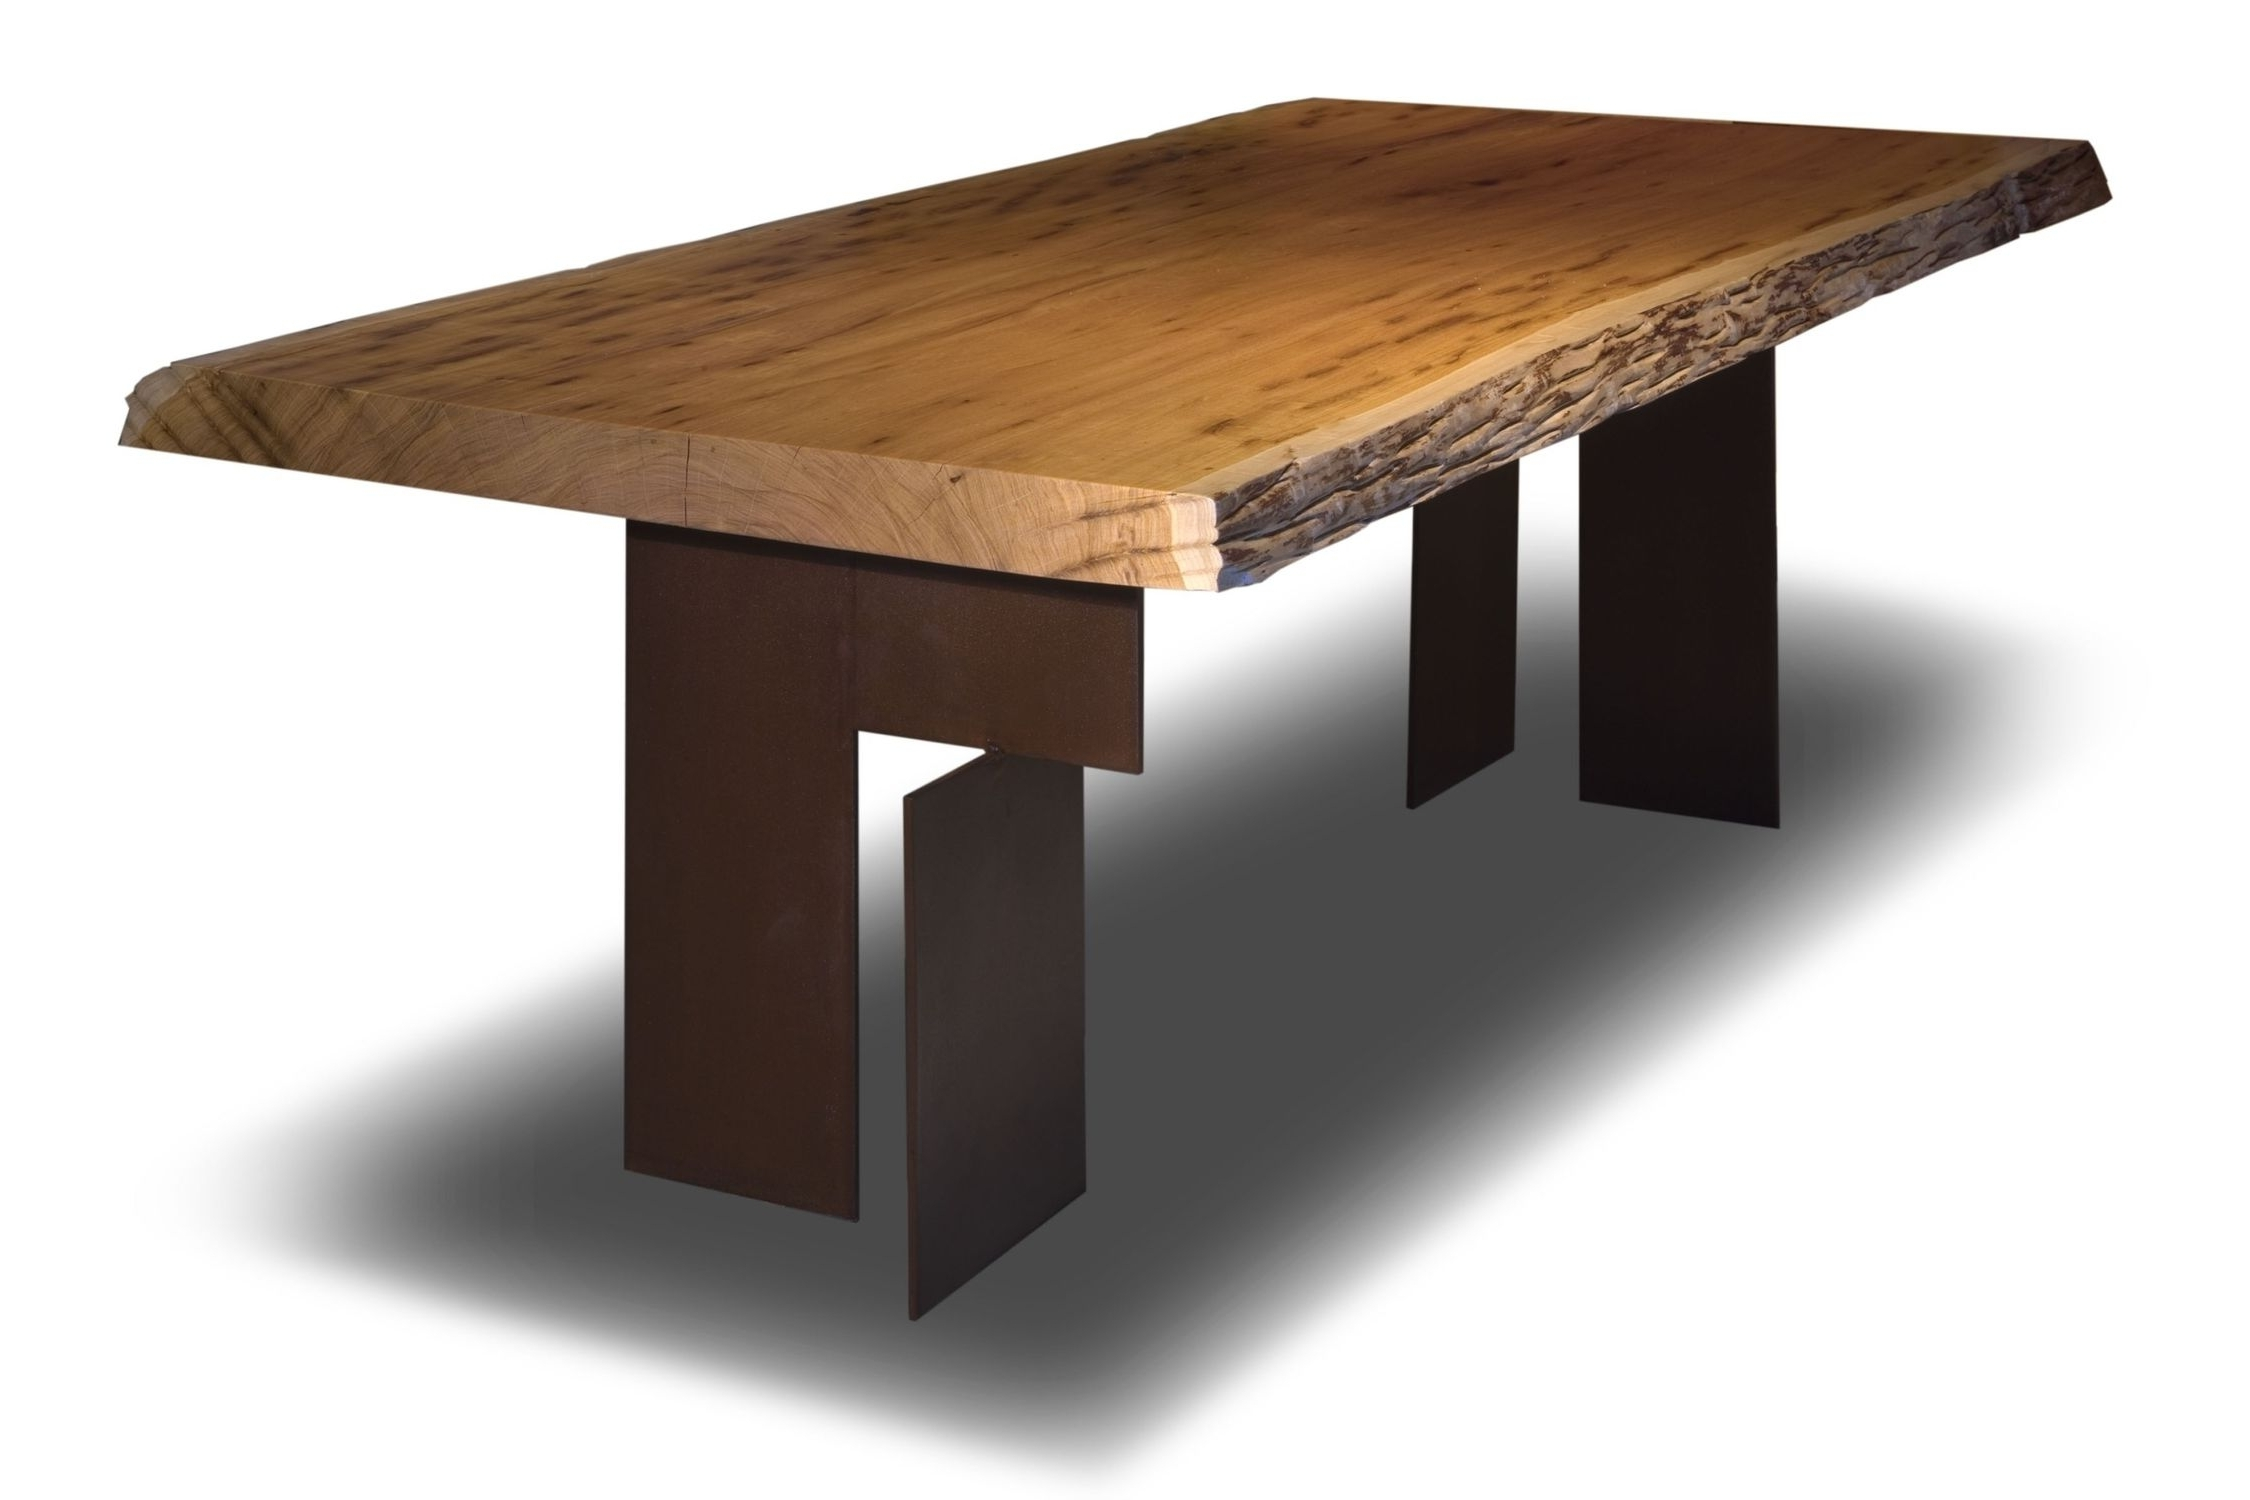 Contemporary Table / Wooden / Rectangular / In Reclaimed Material Within Well Known Reclaimed Elm Cast Iron Coffee Tables (View 5 of 20)